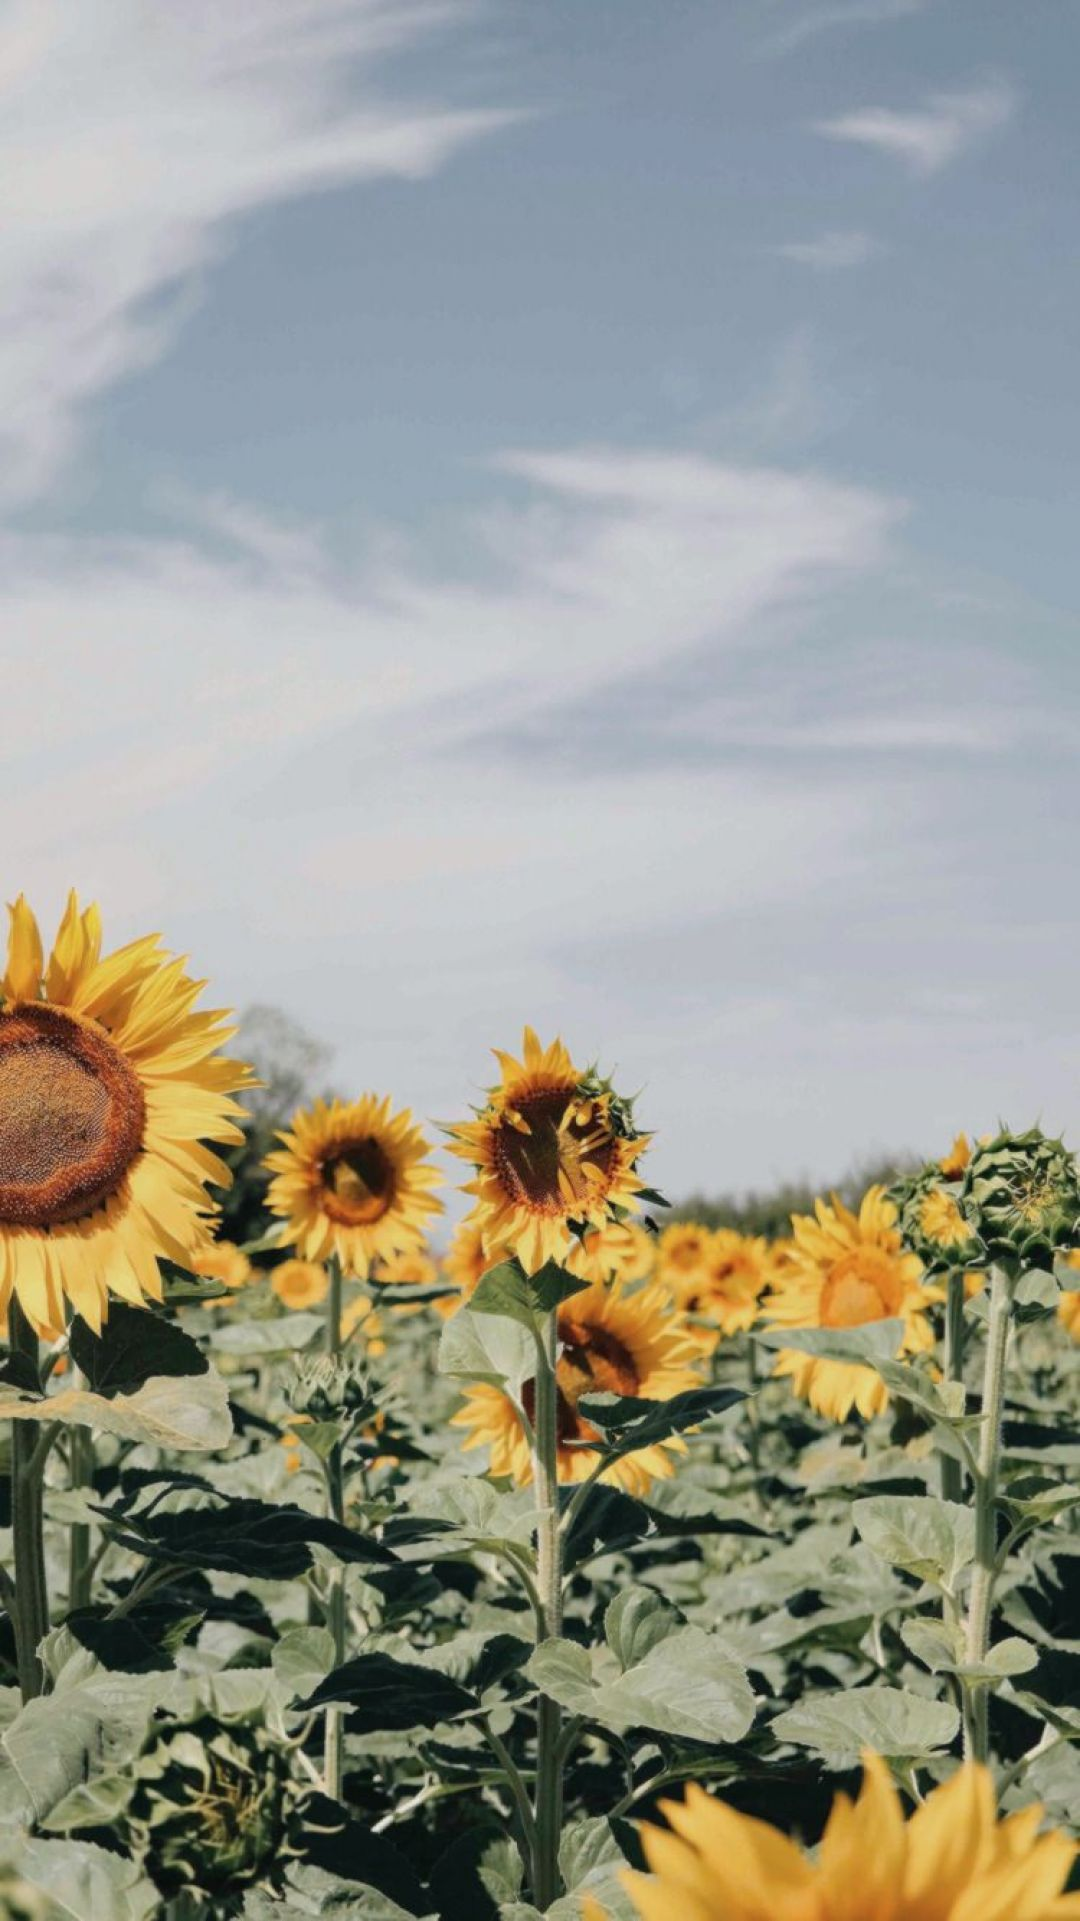 Aesthetic Sunflower Field Wallpapers - Wallpaper Cave